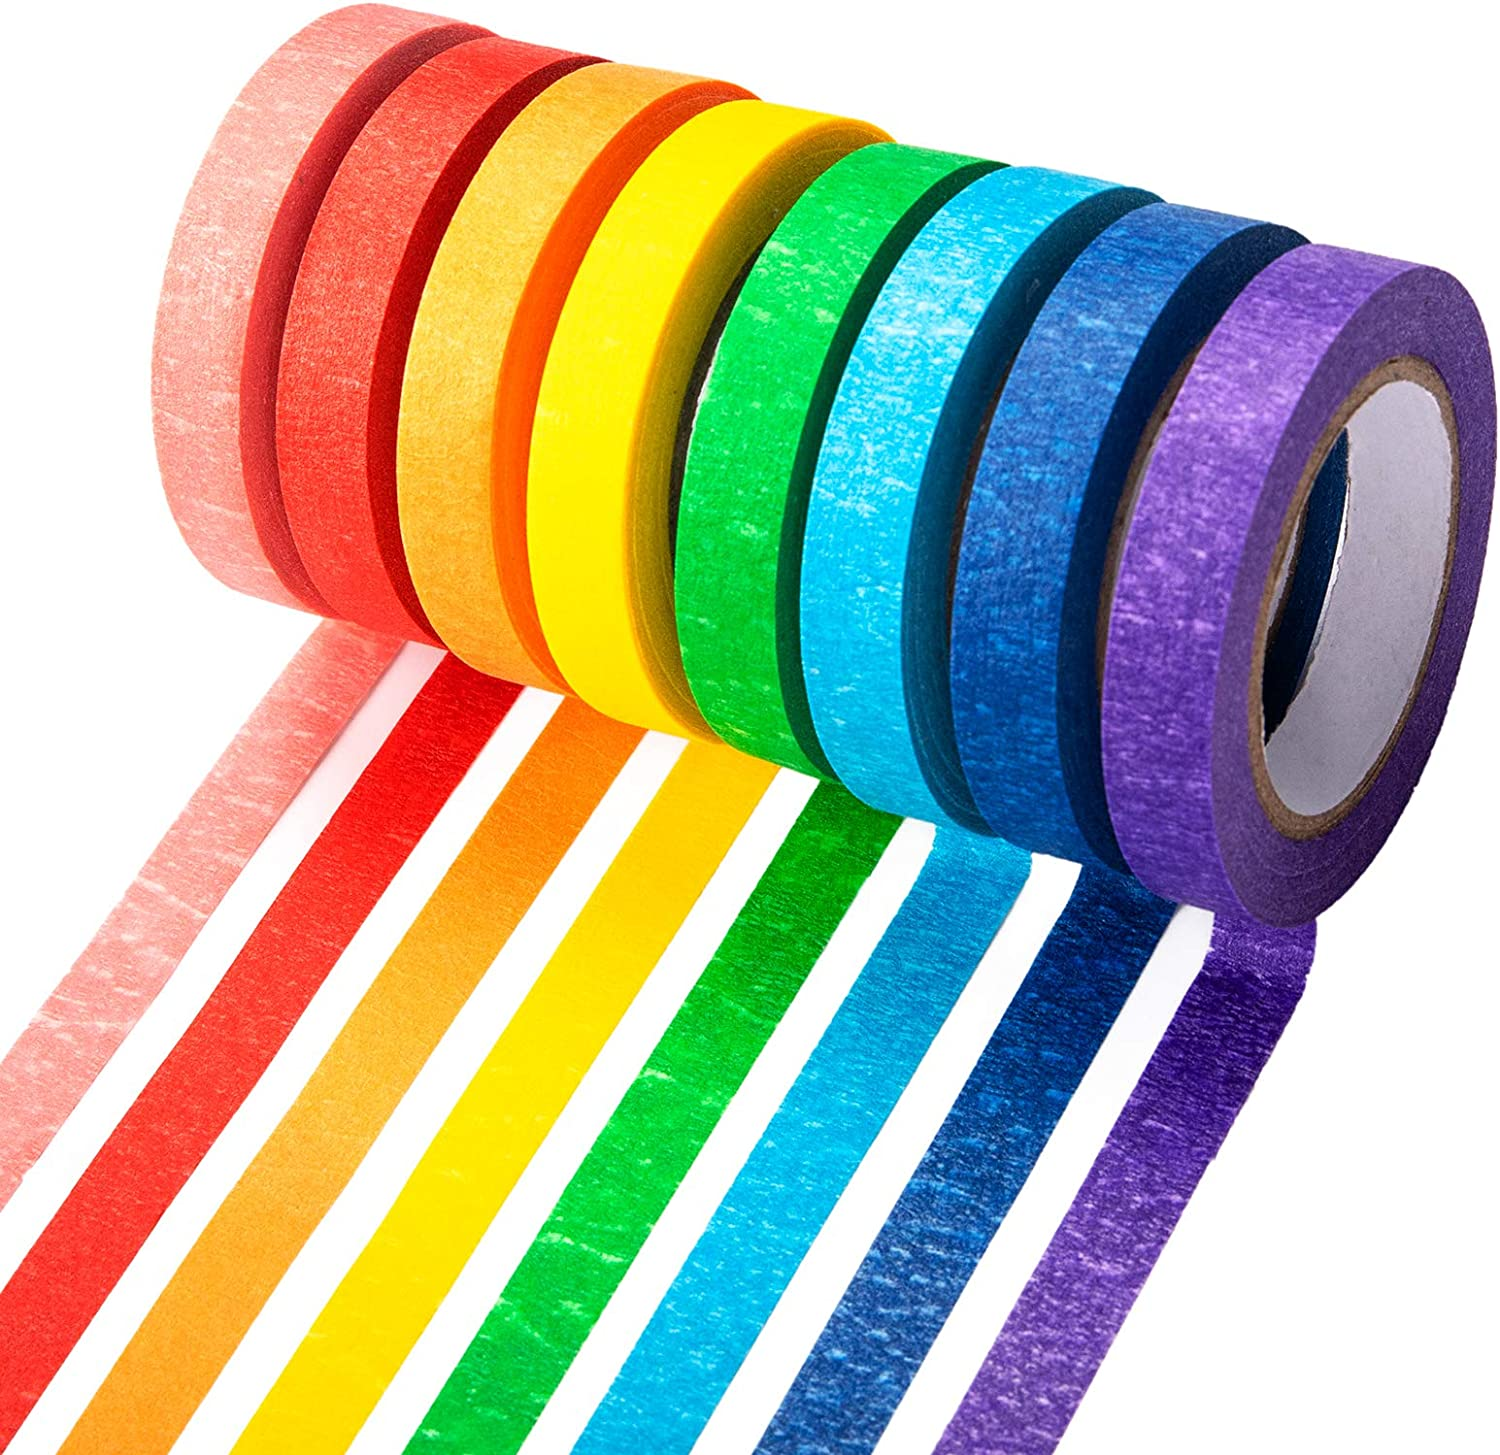 Colored Masking Tapes 12 Rolls 0.4 Inch, Colorful Painters Tapes Rainbow Labeling Arts Decorative for Kids Colored Craft Tapes 144 Yards for Craft, School Projects, Party Decorations